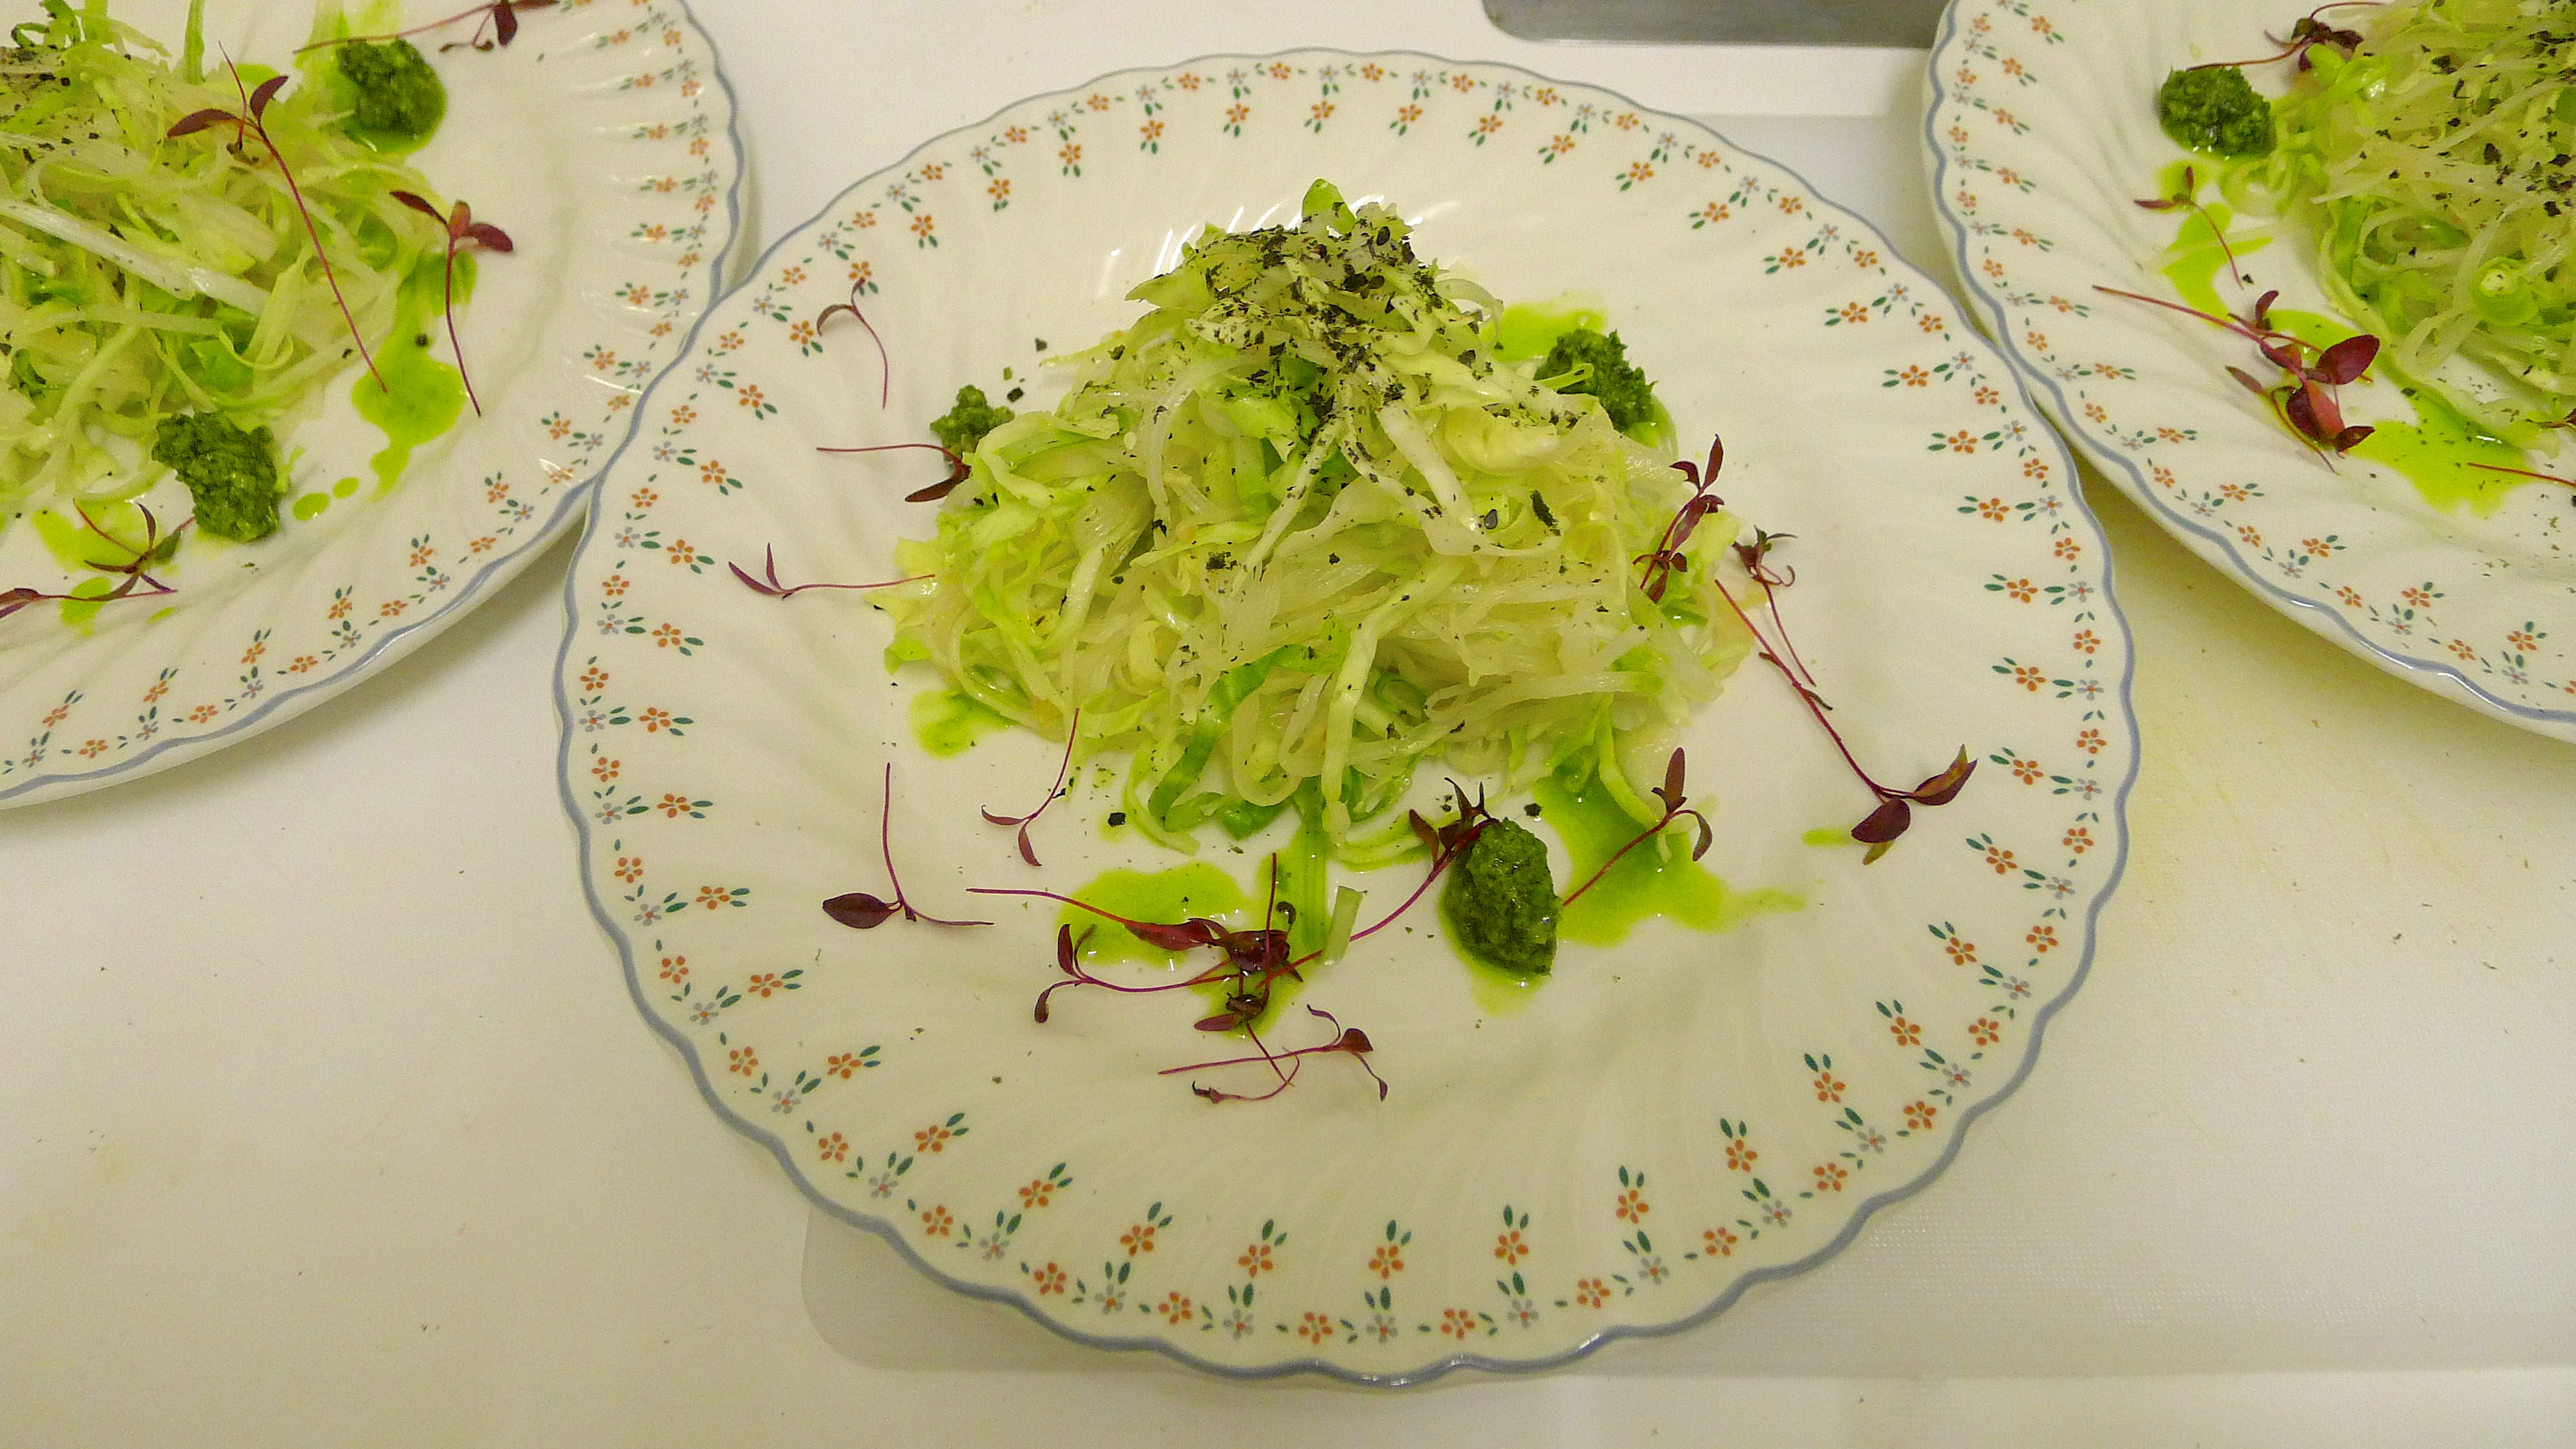 https://i2.wp.com/fatgayvegan.com/wp-content/uploads/2014/03/chiffonade-savoy-daikon-scallion-with-ginger-miso-dressing.jpg?fit=3968%2C2232